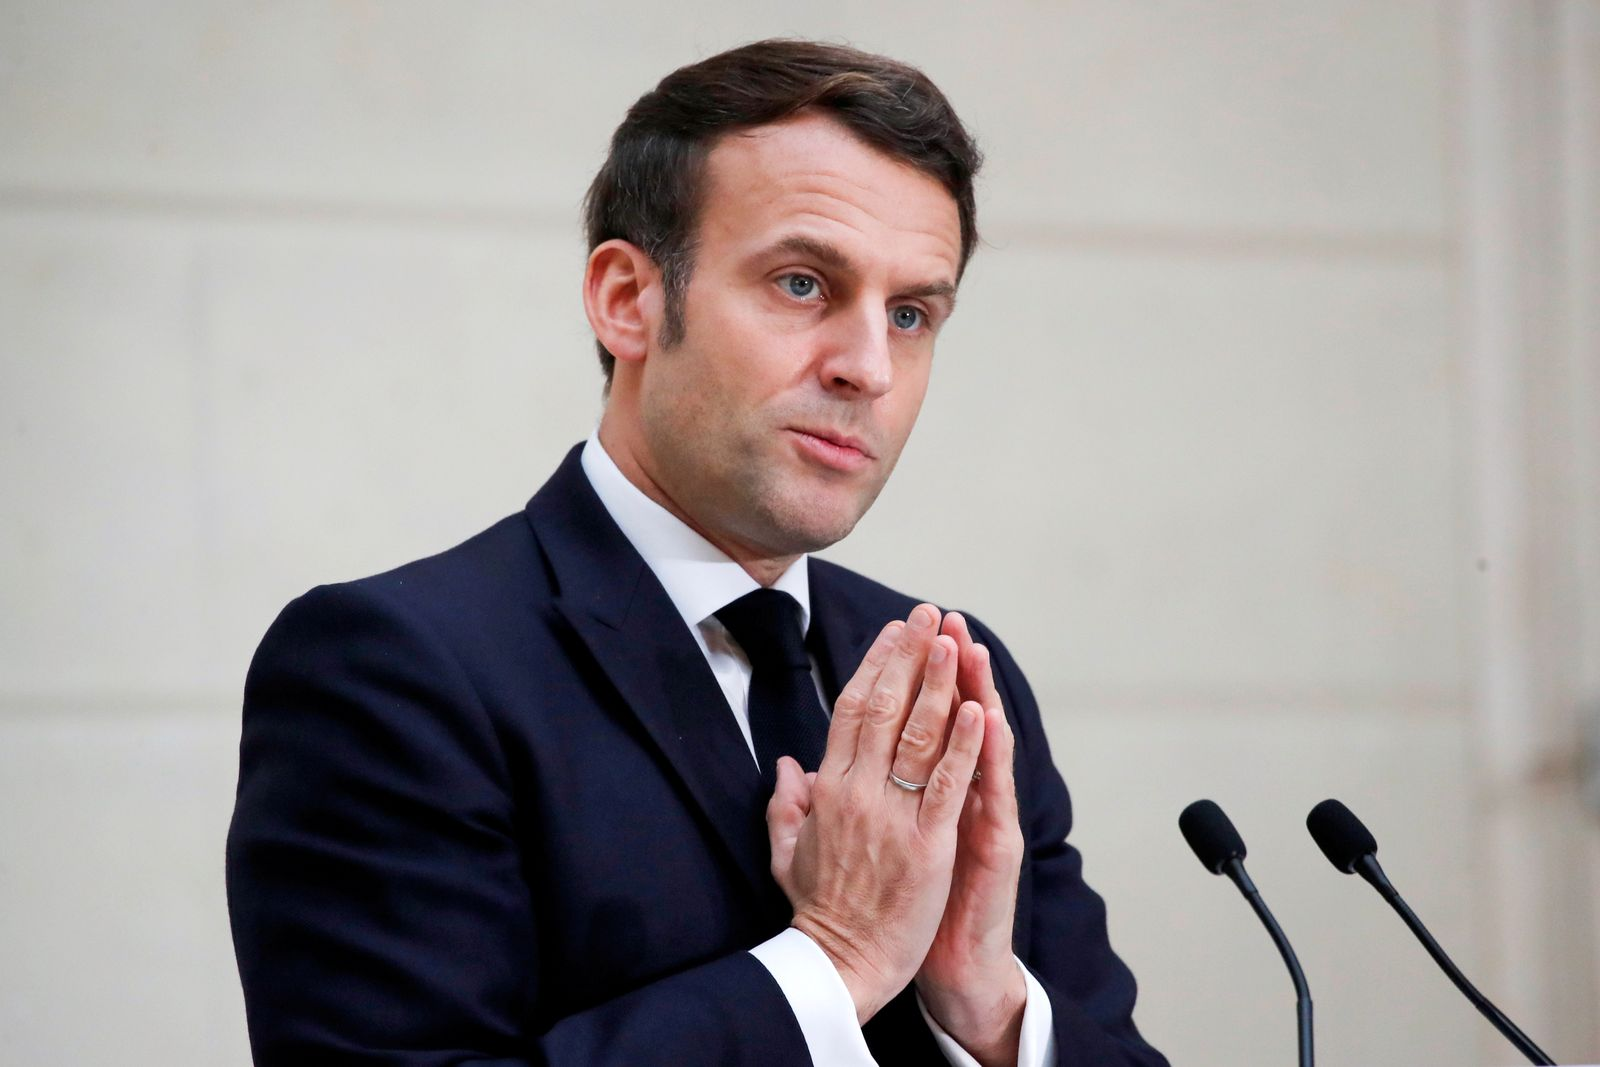 FILE PHOTO: French President Emmanuel Macron delivers a speech to the French Bakery and Pastry Federation members next to the traditional epiphany cake, in Paris